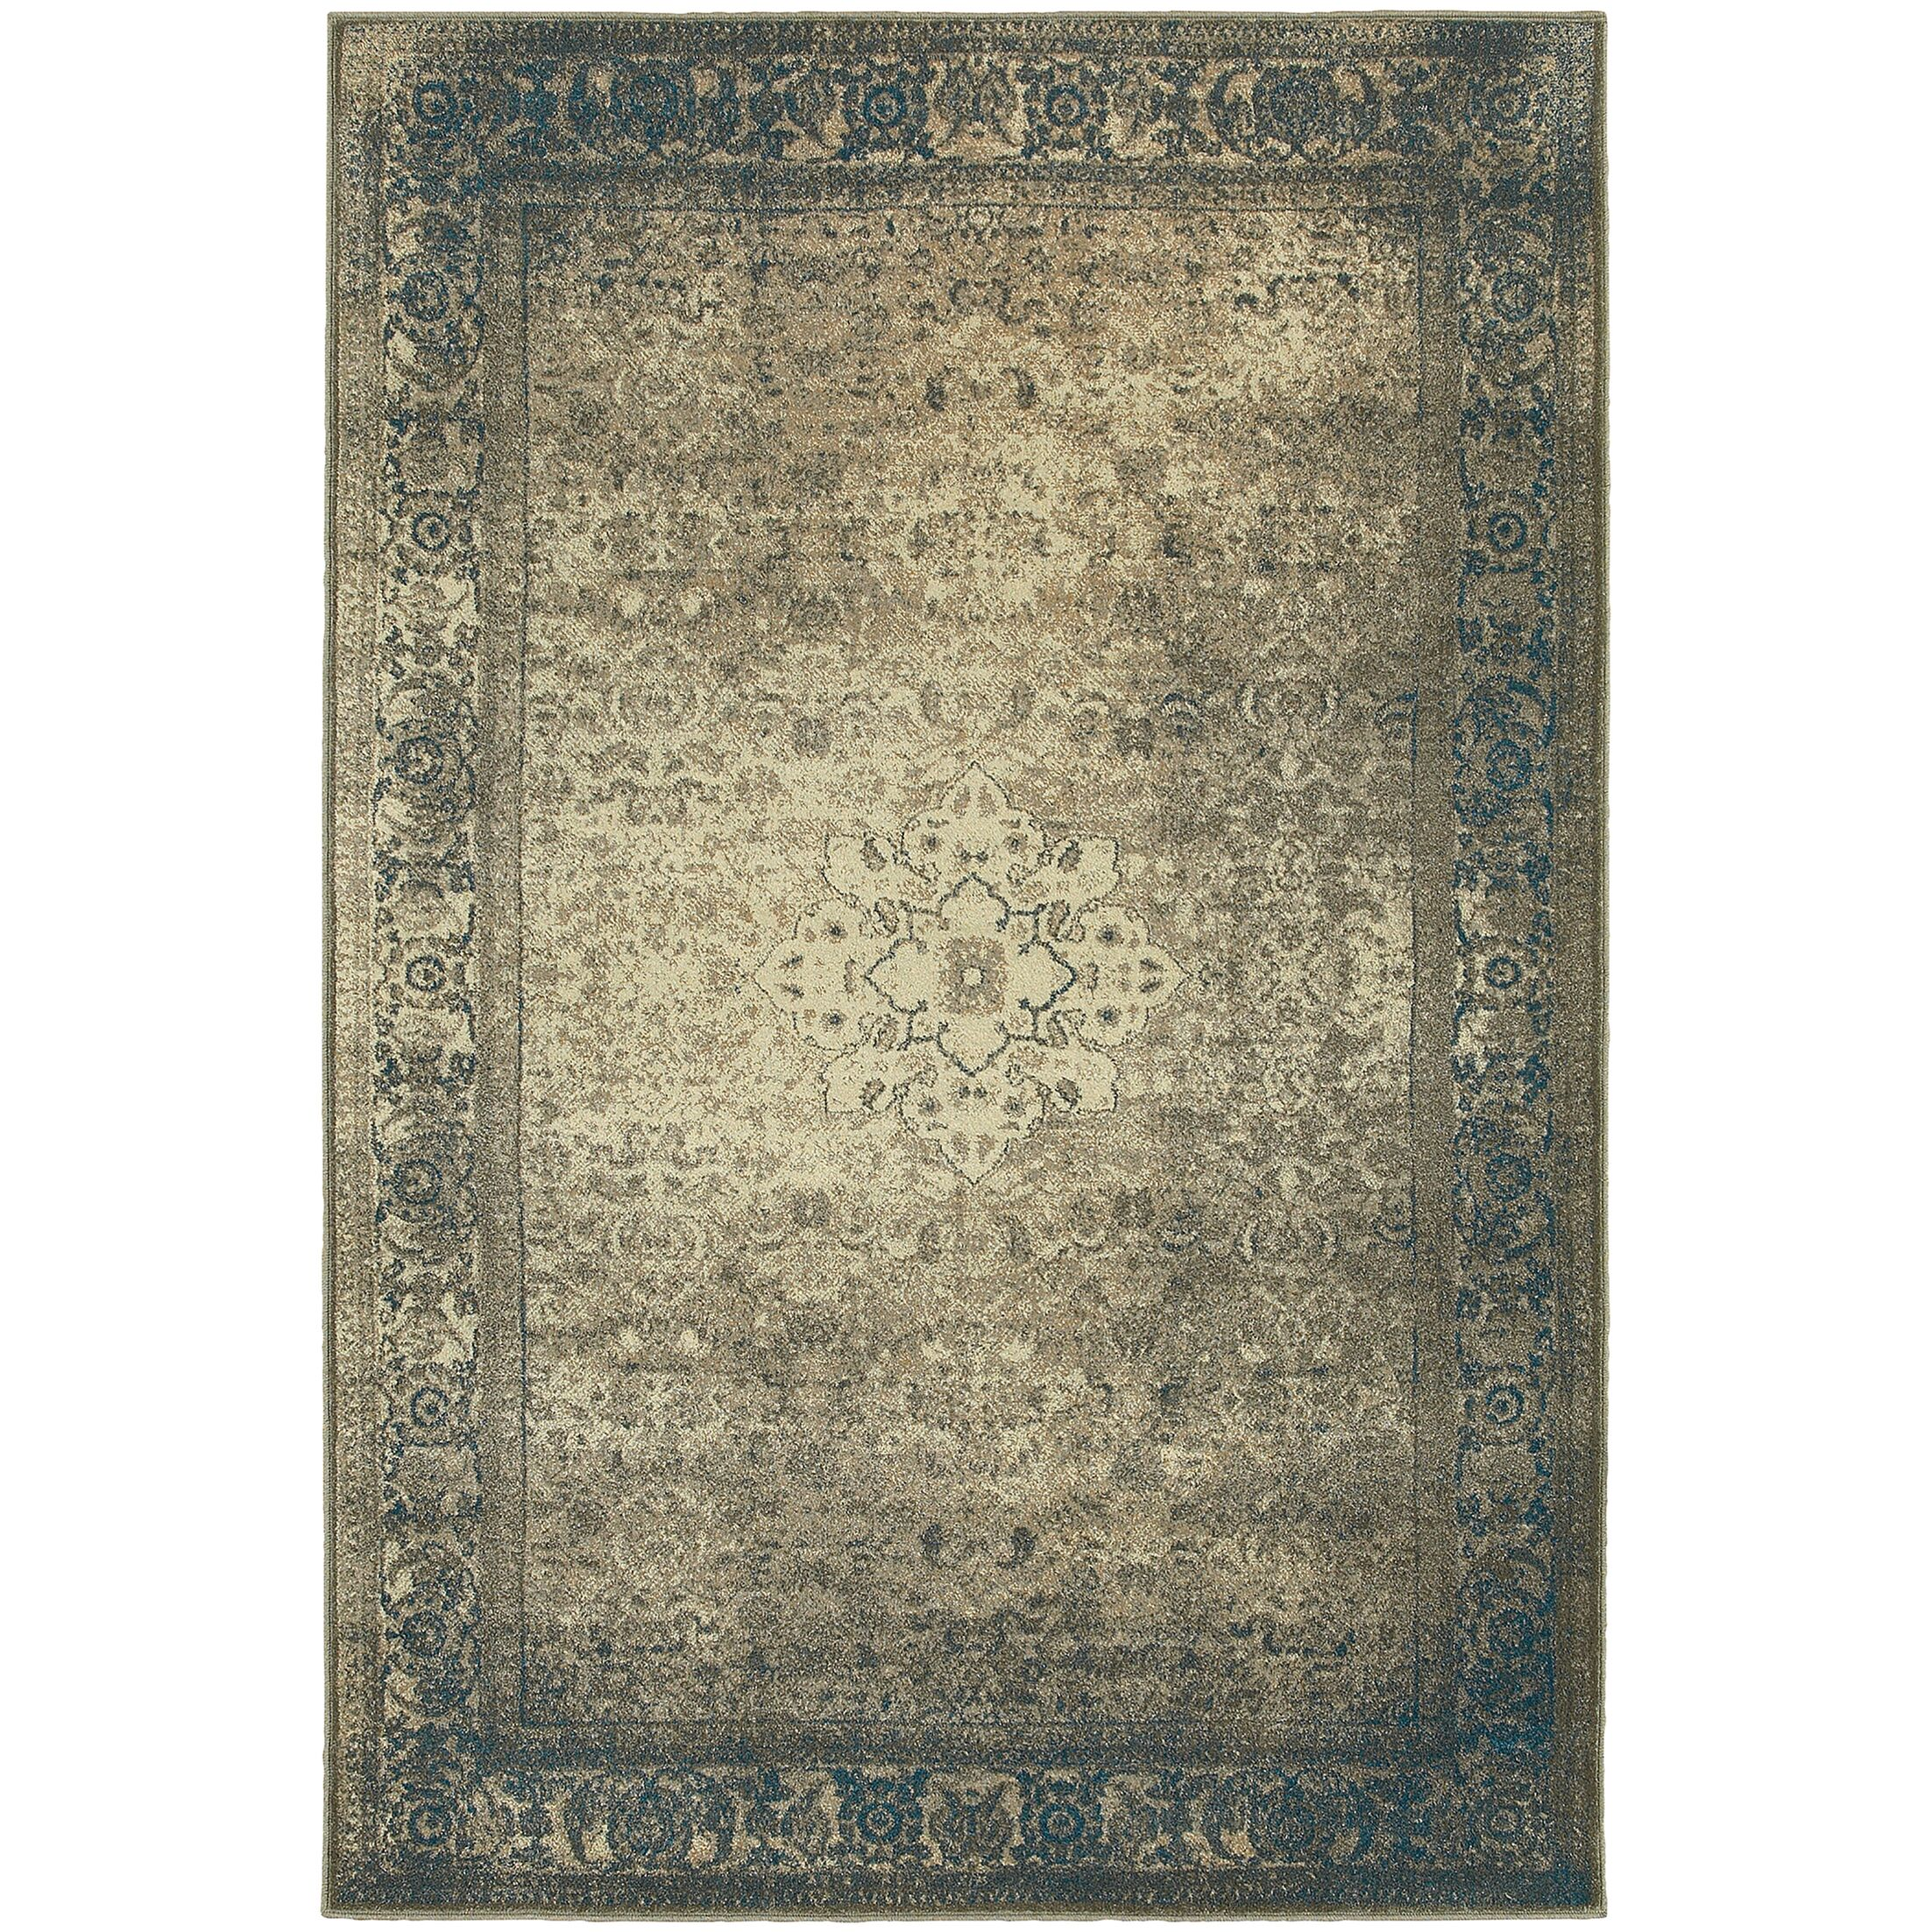 Marche Beige Area Rug Rug Size: Rectangle 5'3